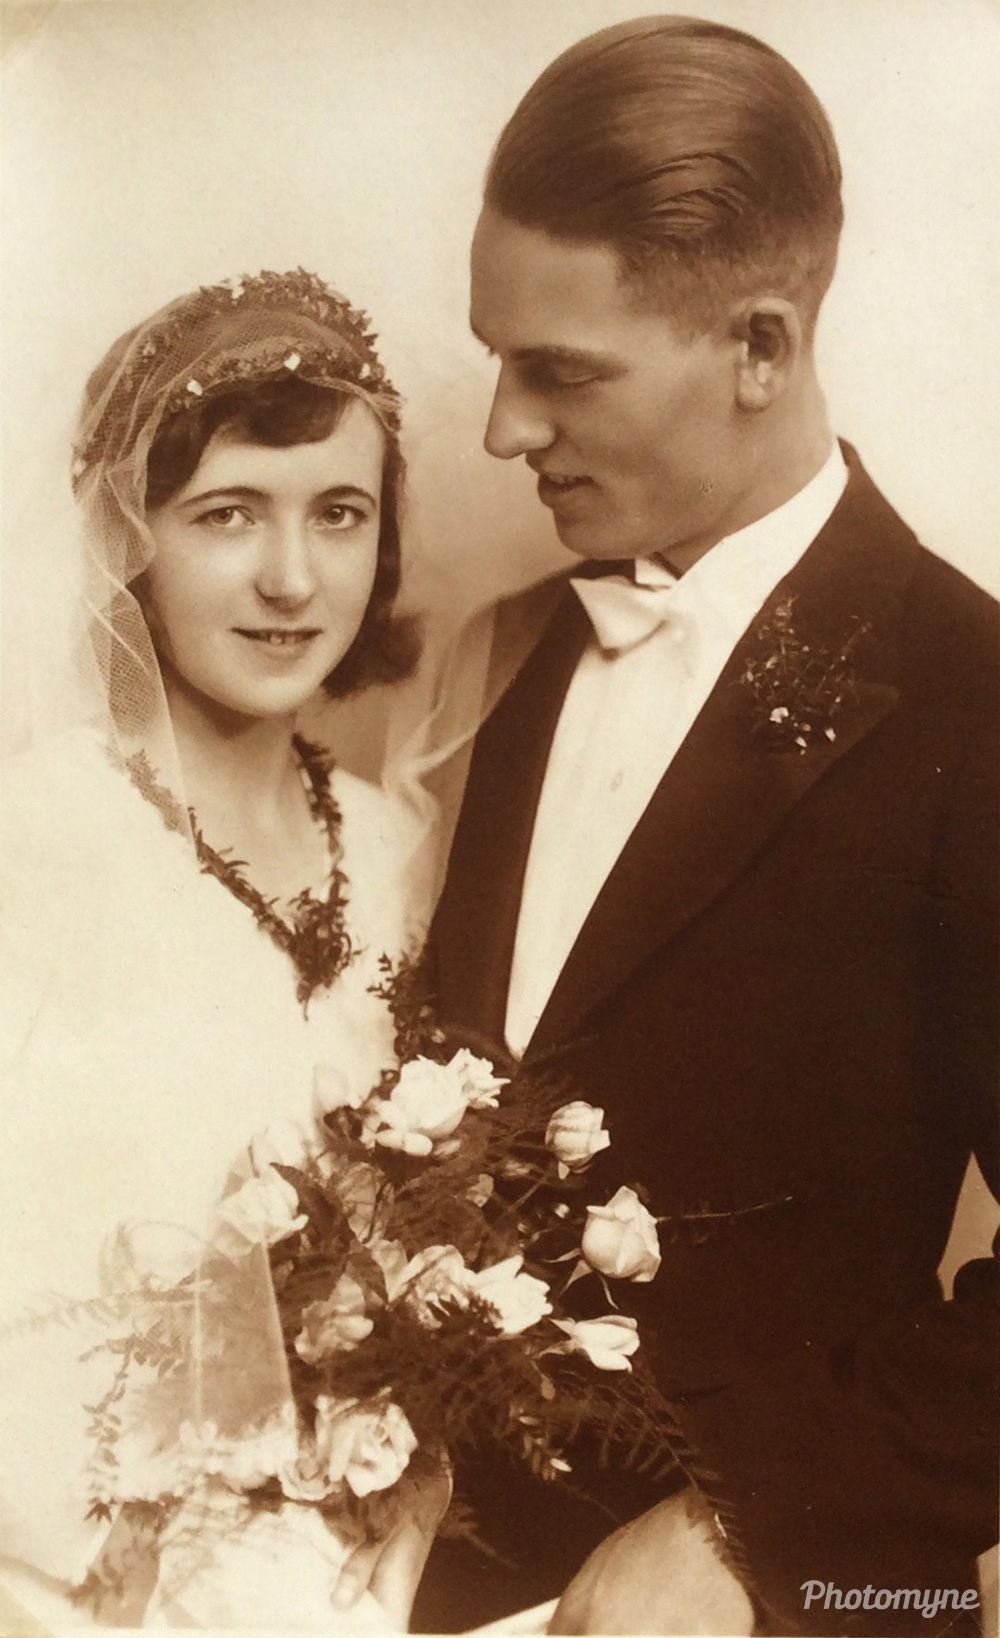 MY PARENTS WEDDING PHOTO.... Braunschweig, Germany, 1930